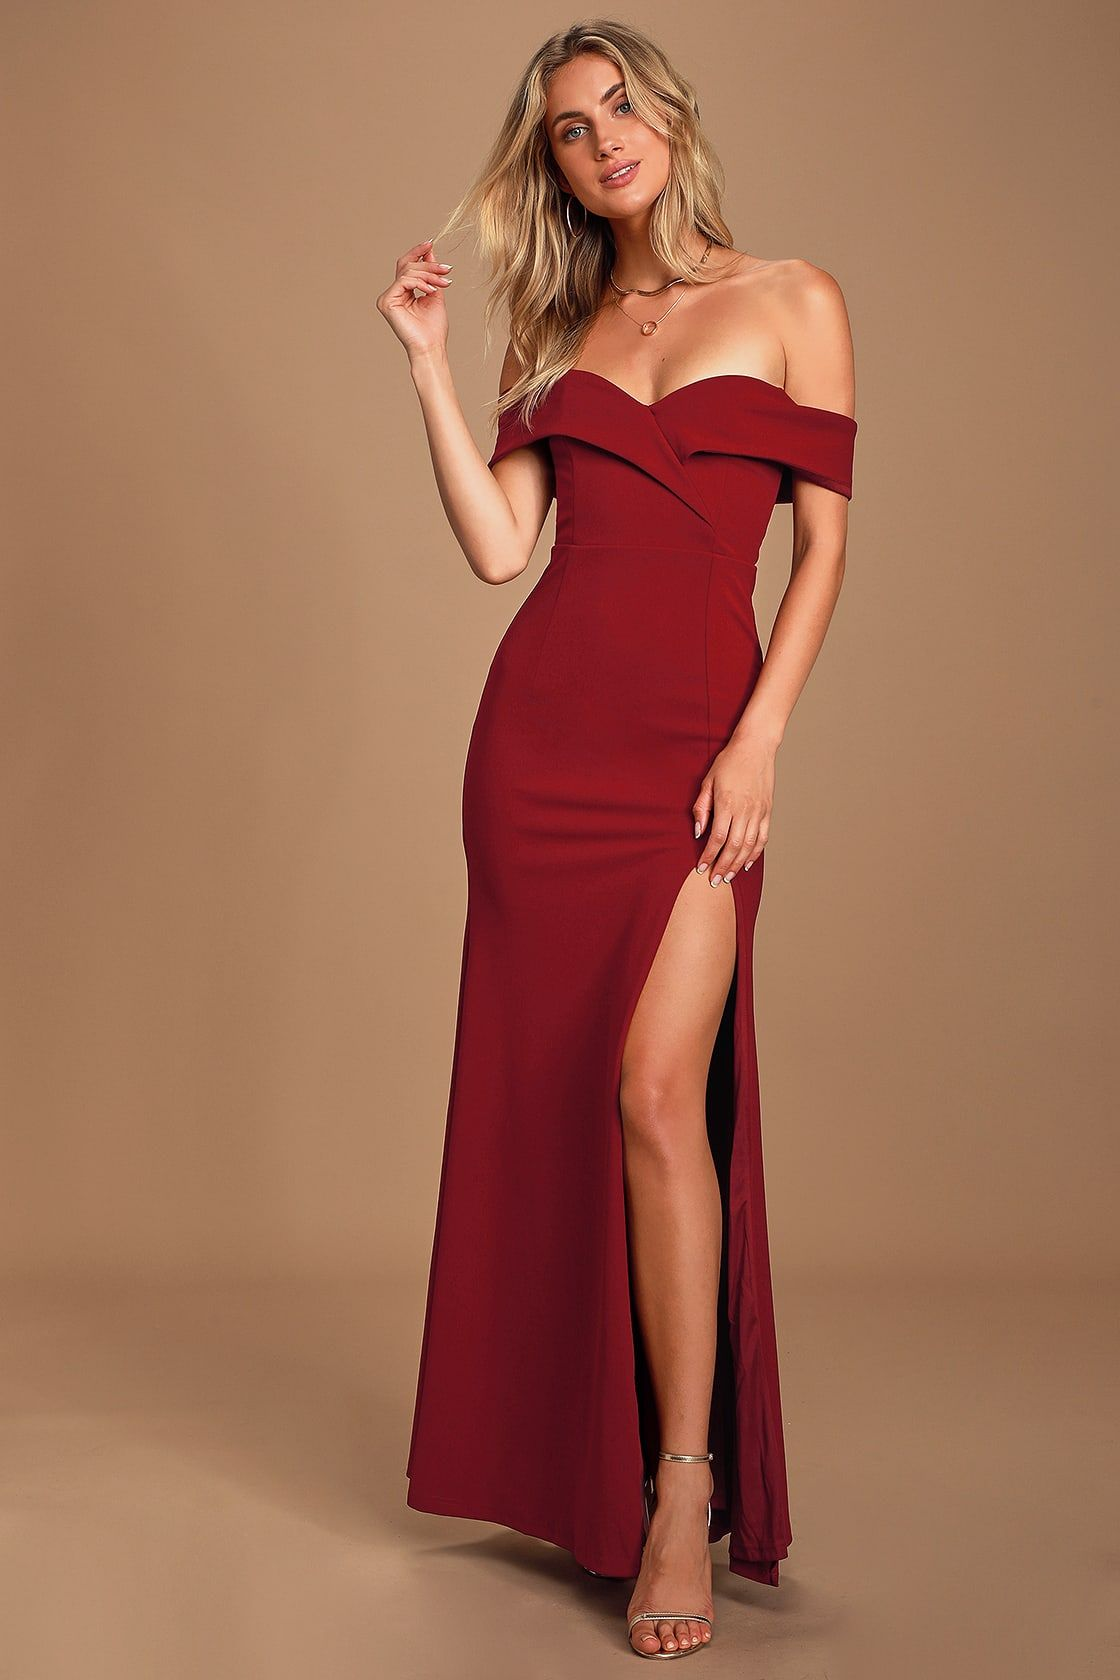 Song Of Love Wine Red Off The Shoulder Maxi Dress In 2020 Red Dress Maxi Maxi Dress With Sleeves Maxi Dress Party